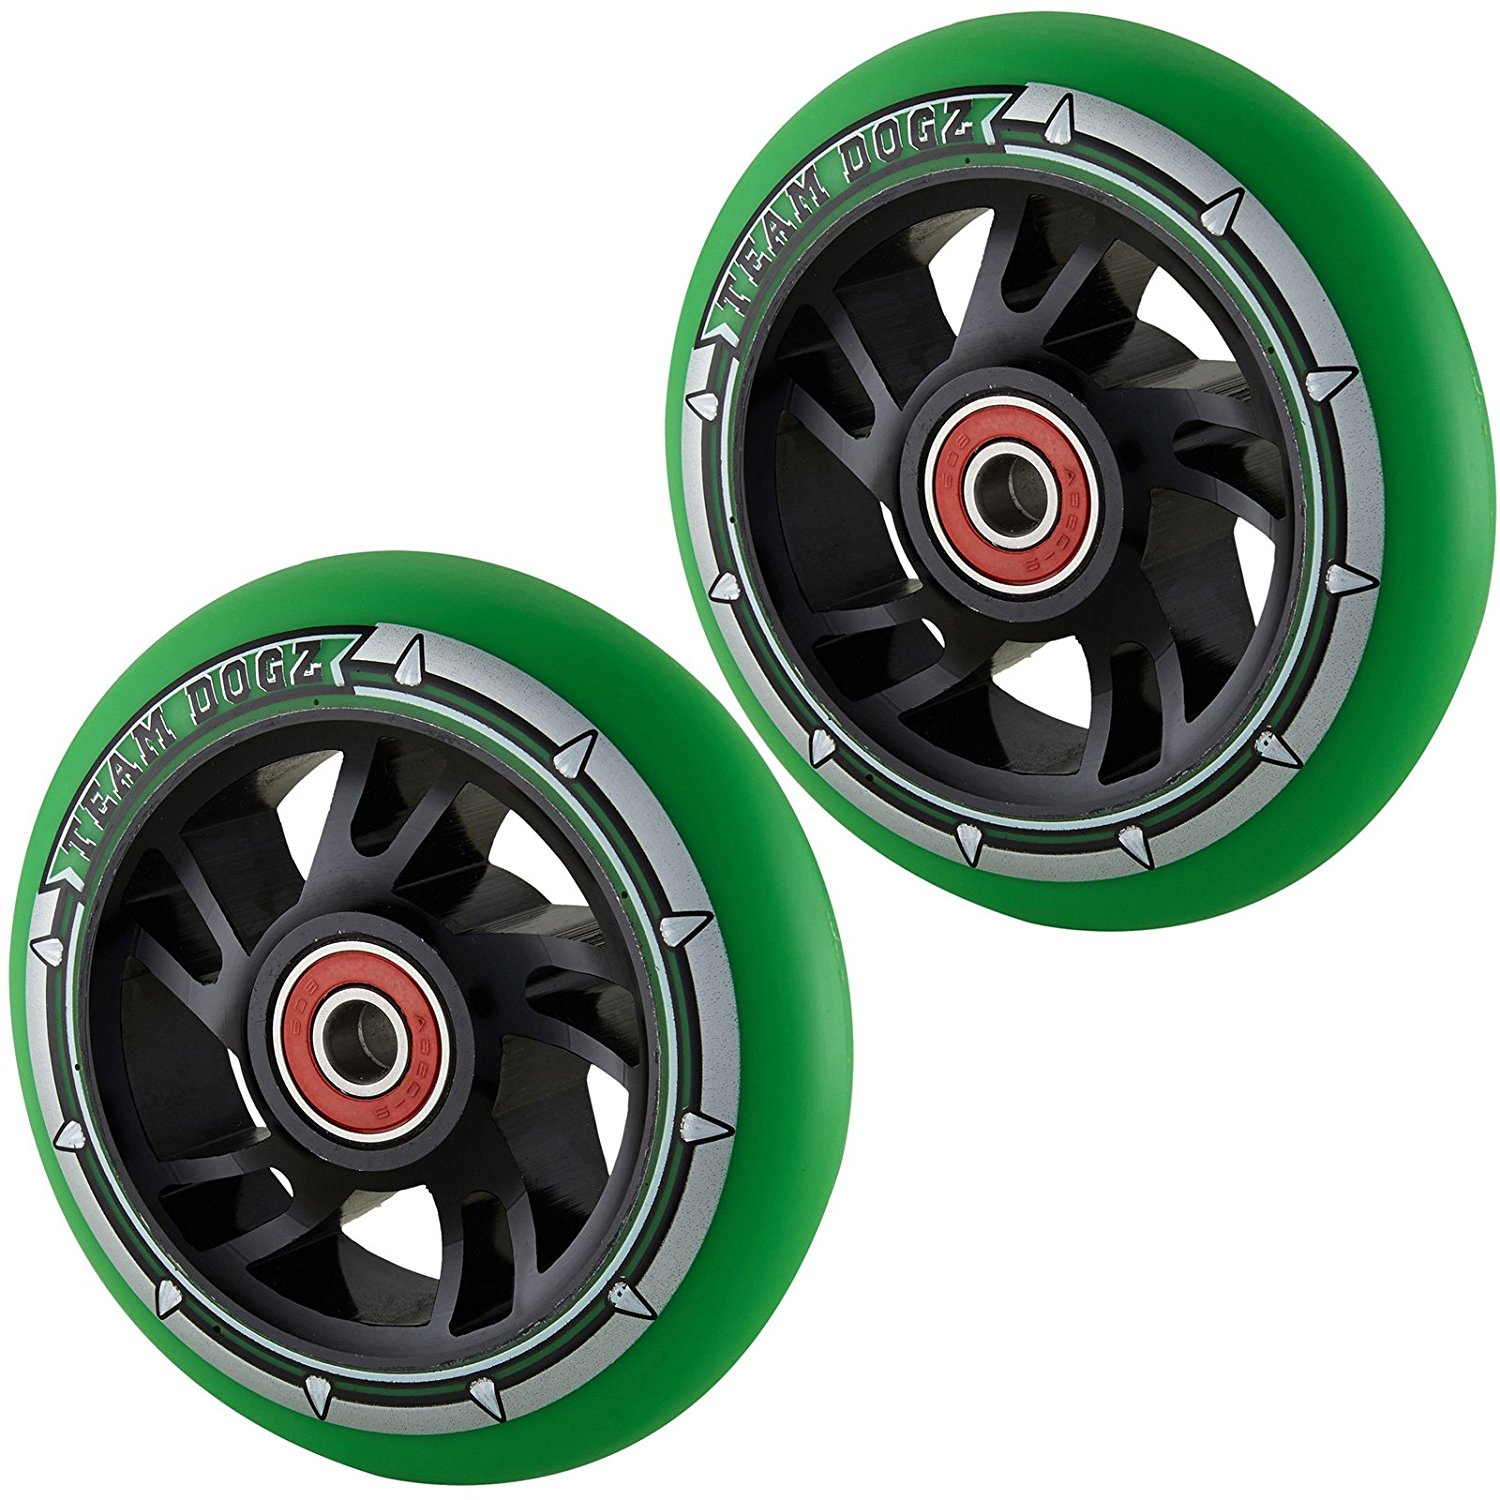 Team Dogz 100mm Swirl Scooter Wheels - Black Cores Green Tyres (Pair)